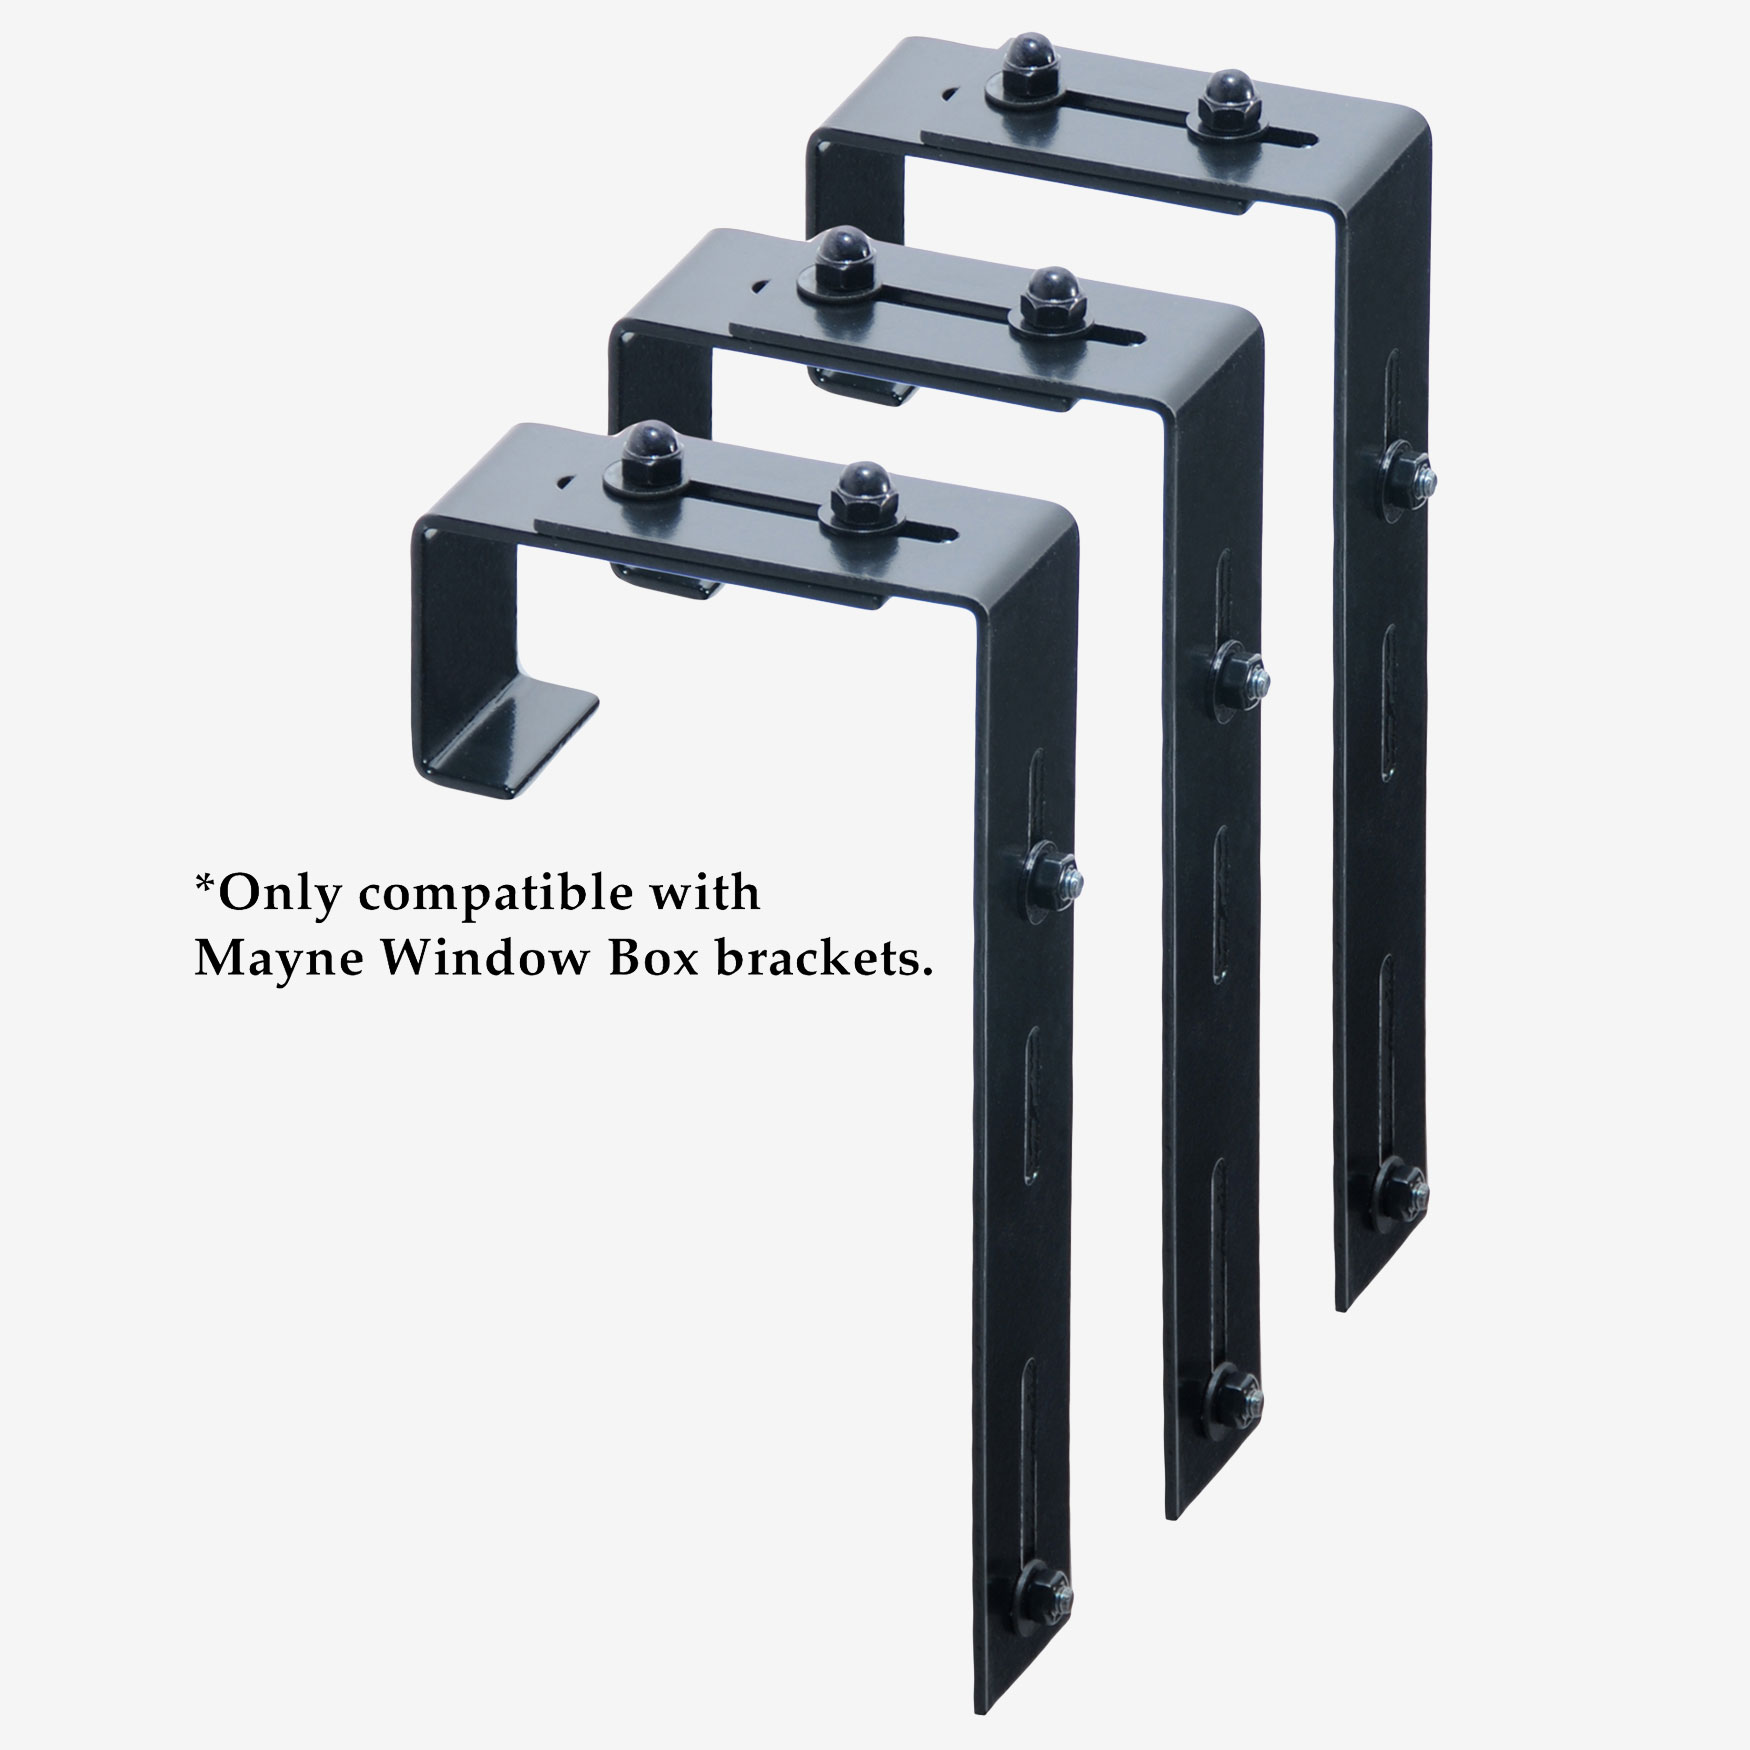 Mayne® Adjustable Deck Rail Bracket 3-Pack, BLACK